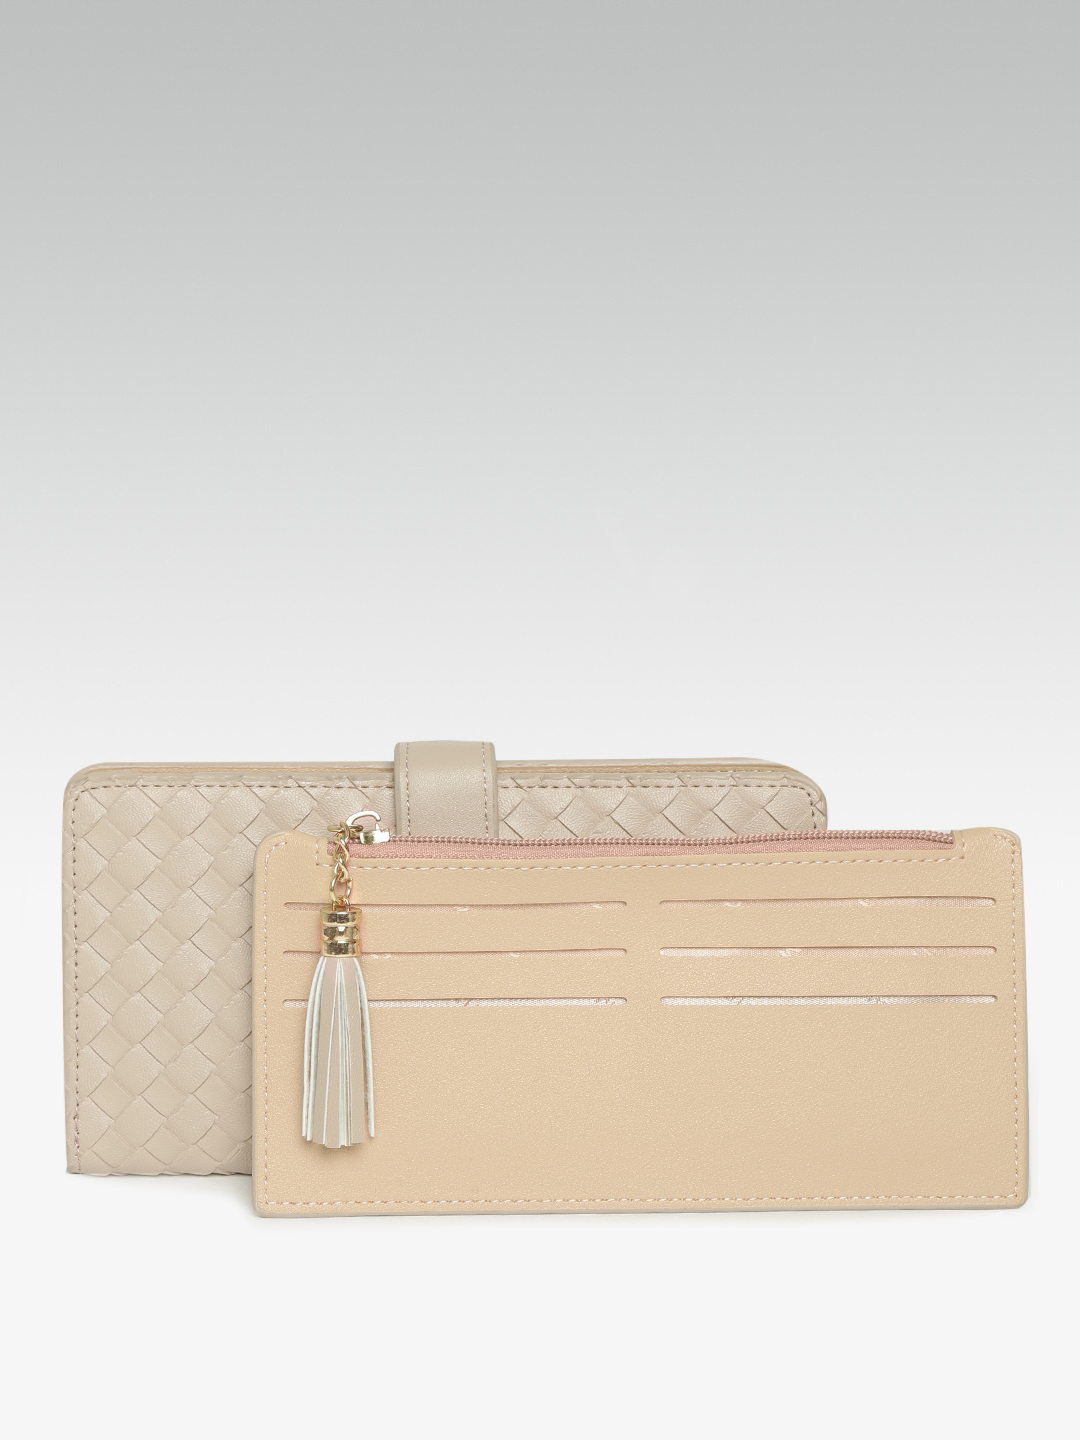 Wallets and Makeup Pouches-The Woven Rage Beige Wallet1